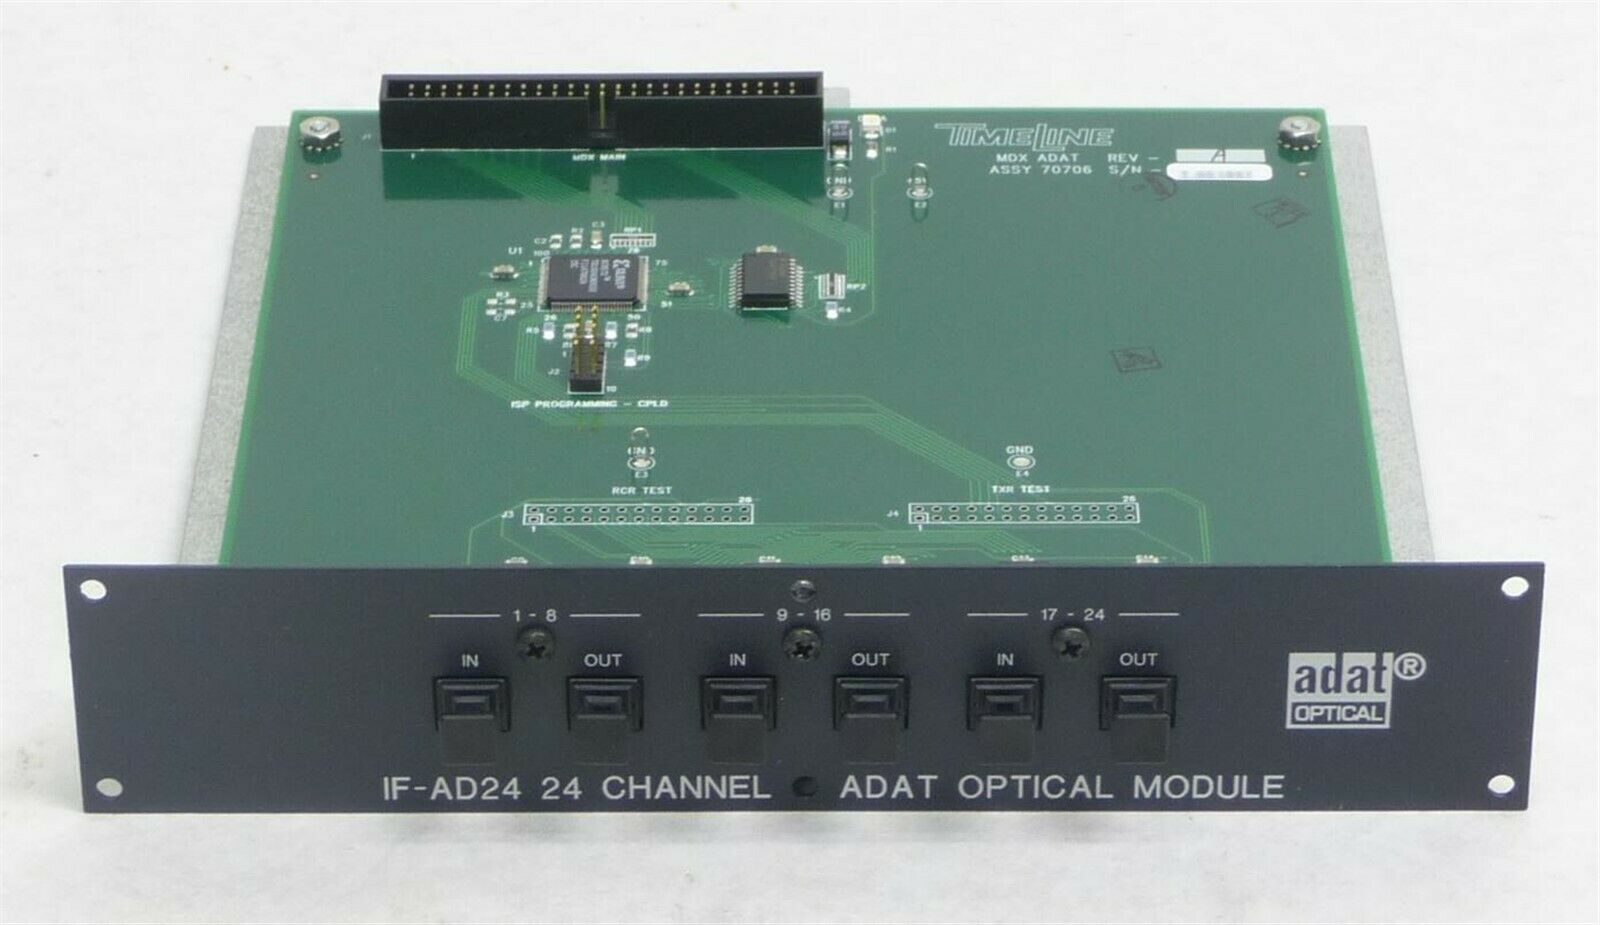 NEW TASCAM IF-AD24  24 CHANNEL OPTICAL ADAT EXPANSION OPTION I O CARD MX-2424